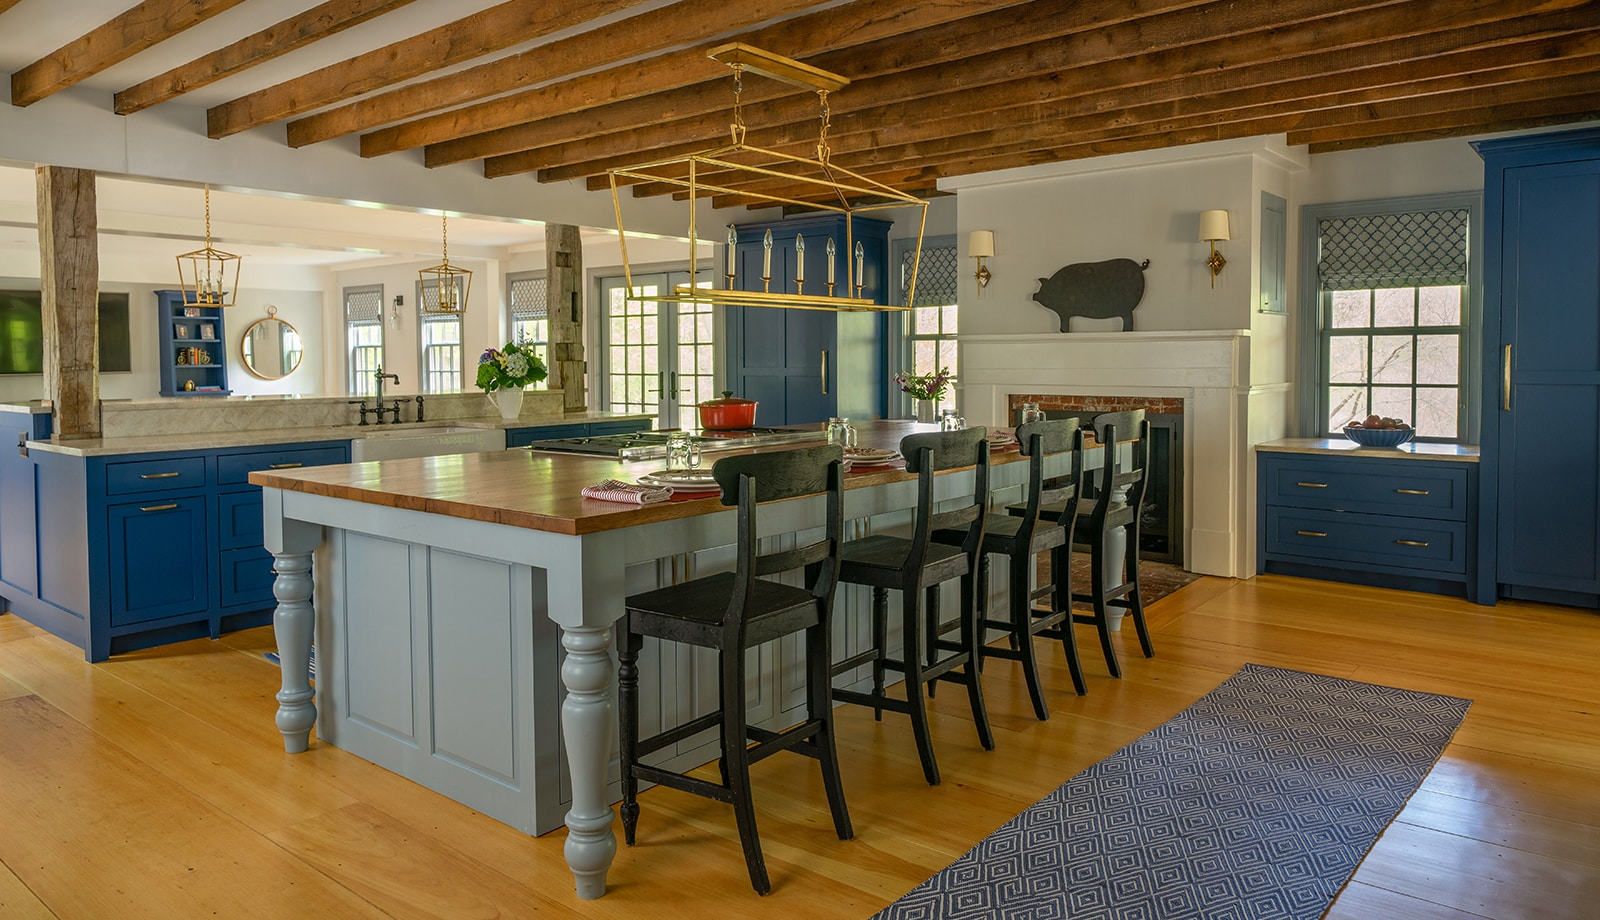 Centre Farm Lynnfield MA Interiors Kitchen